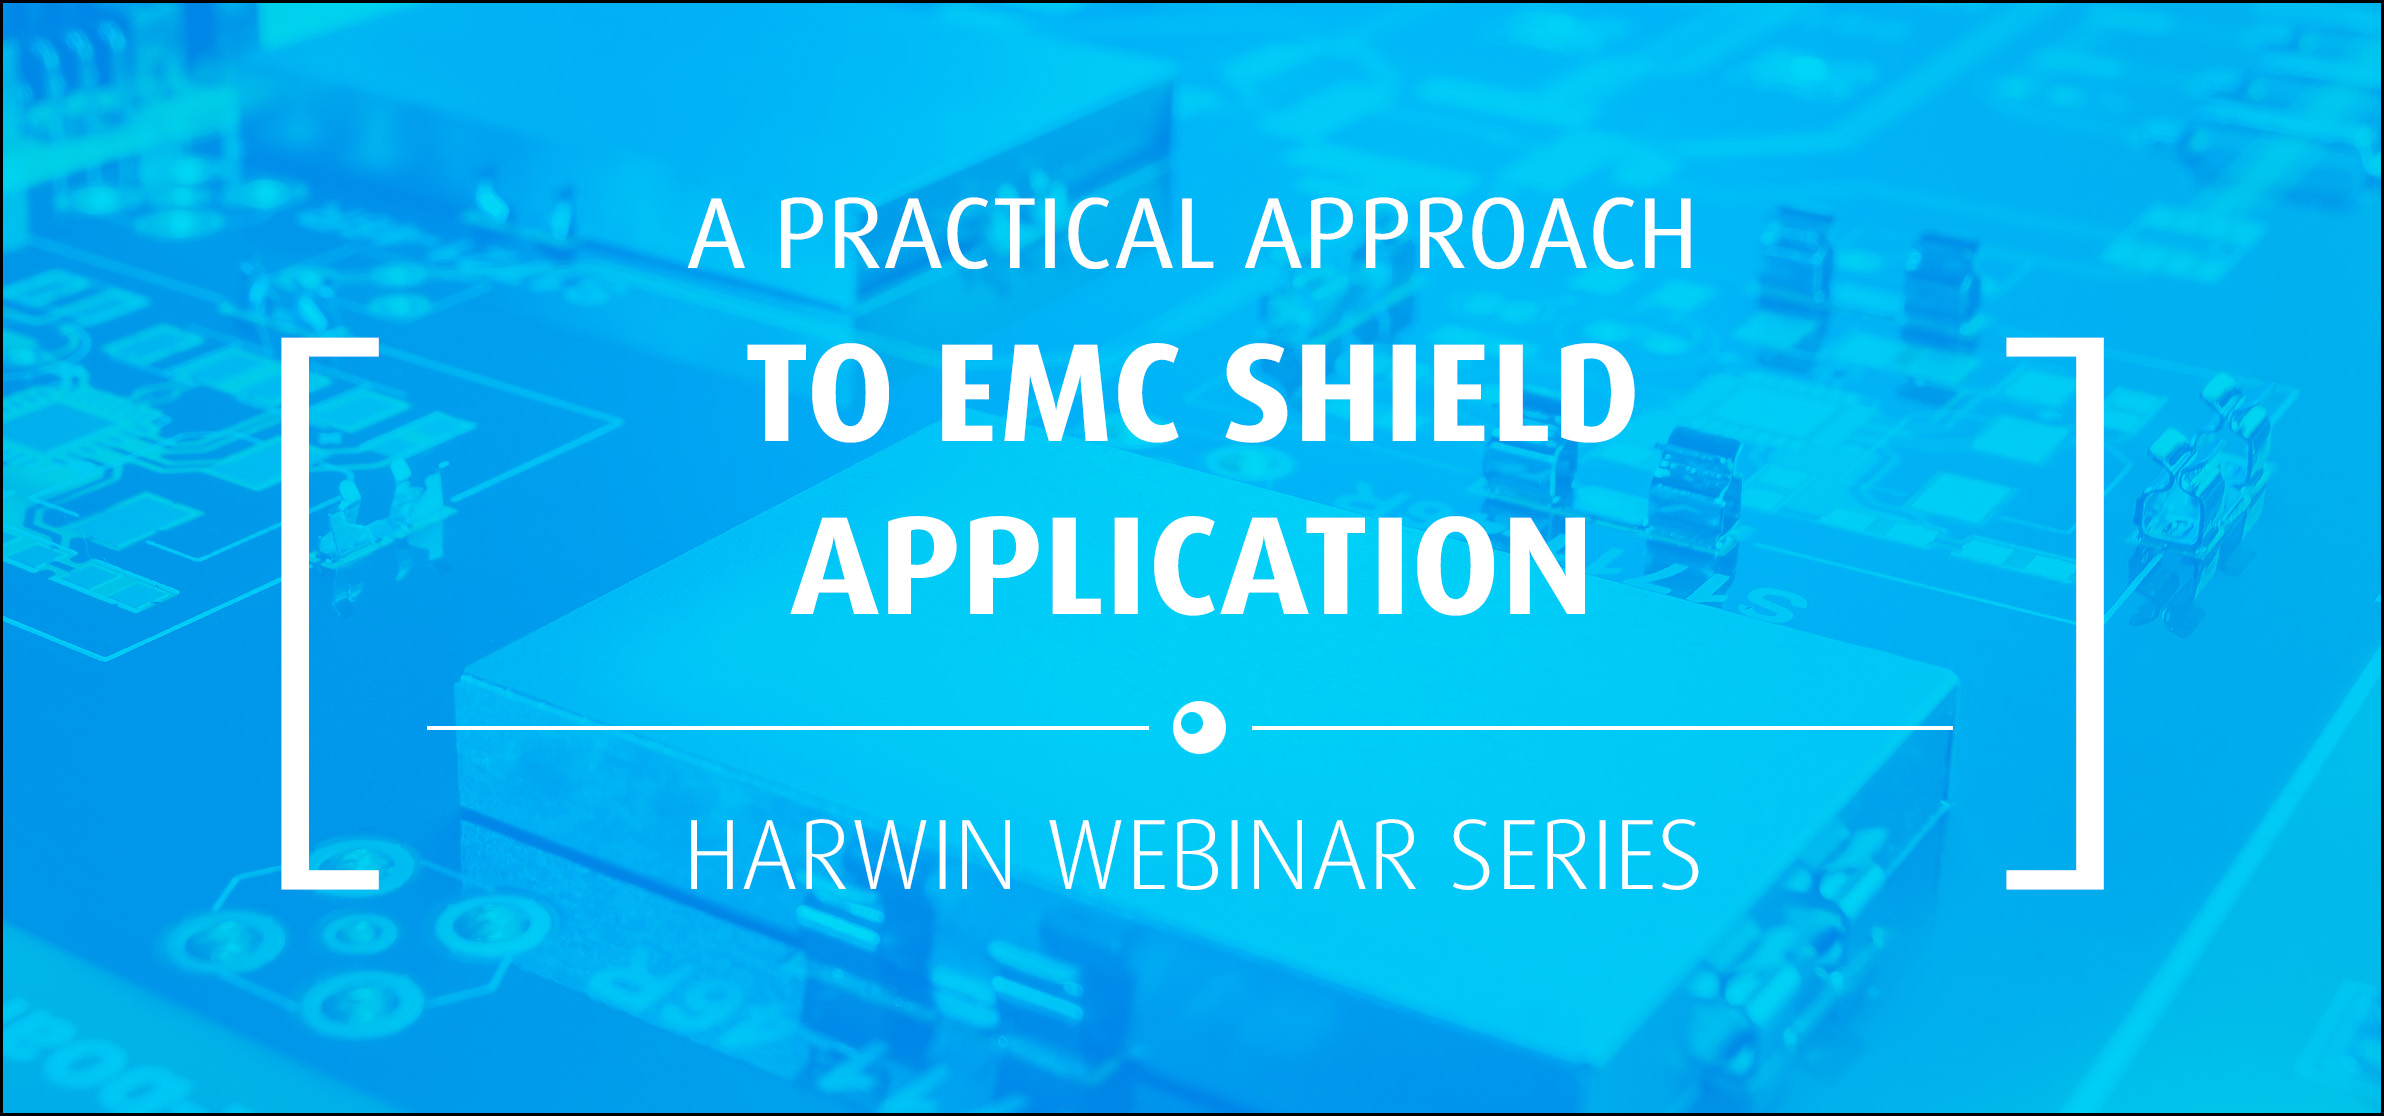 Wista video for A Practical Approach to EMC Shield Application